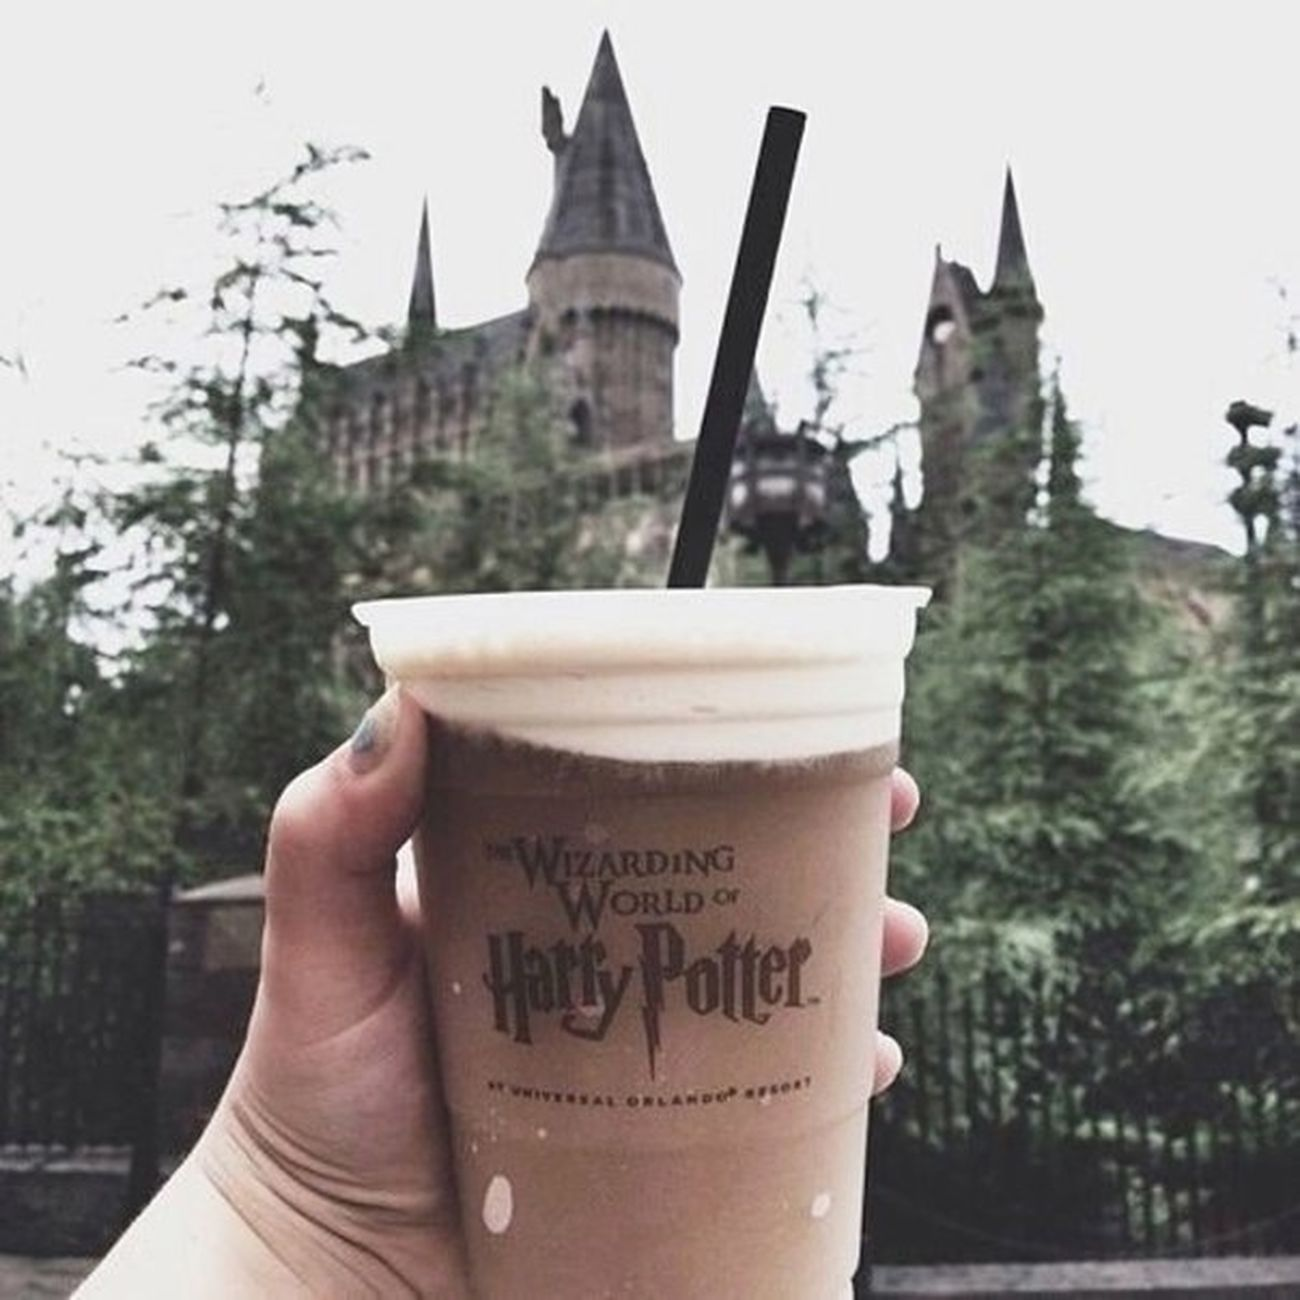 Harry Potter ⚡ Harry Potter Harrypotter Harry Potter ❤ Harrypotterworld